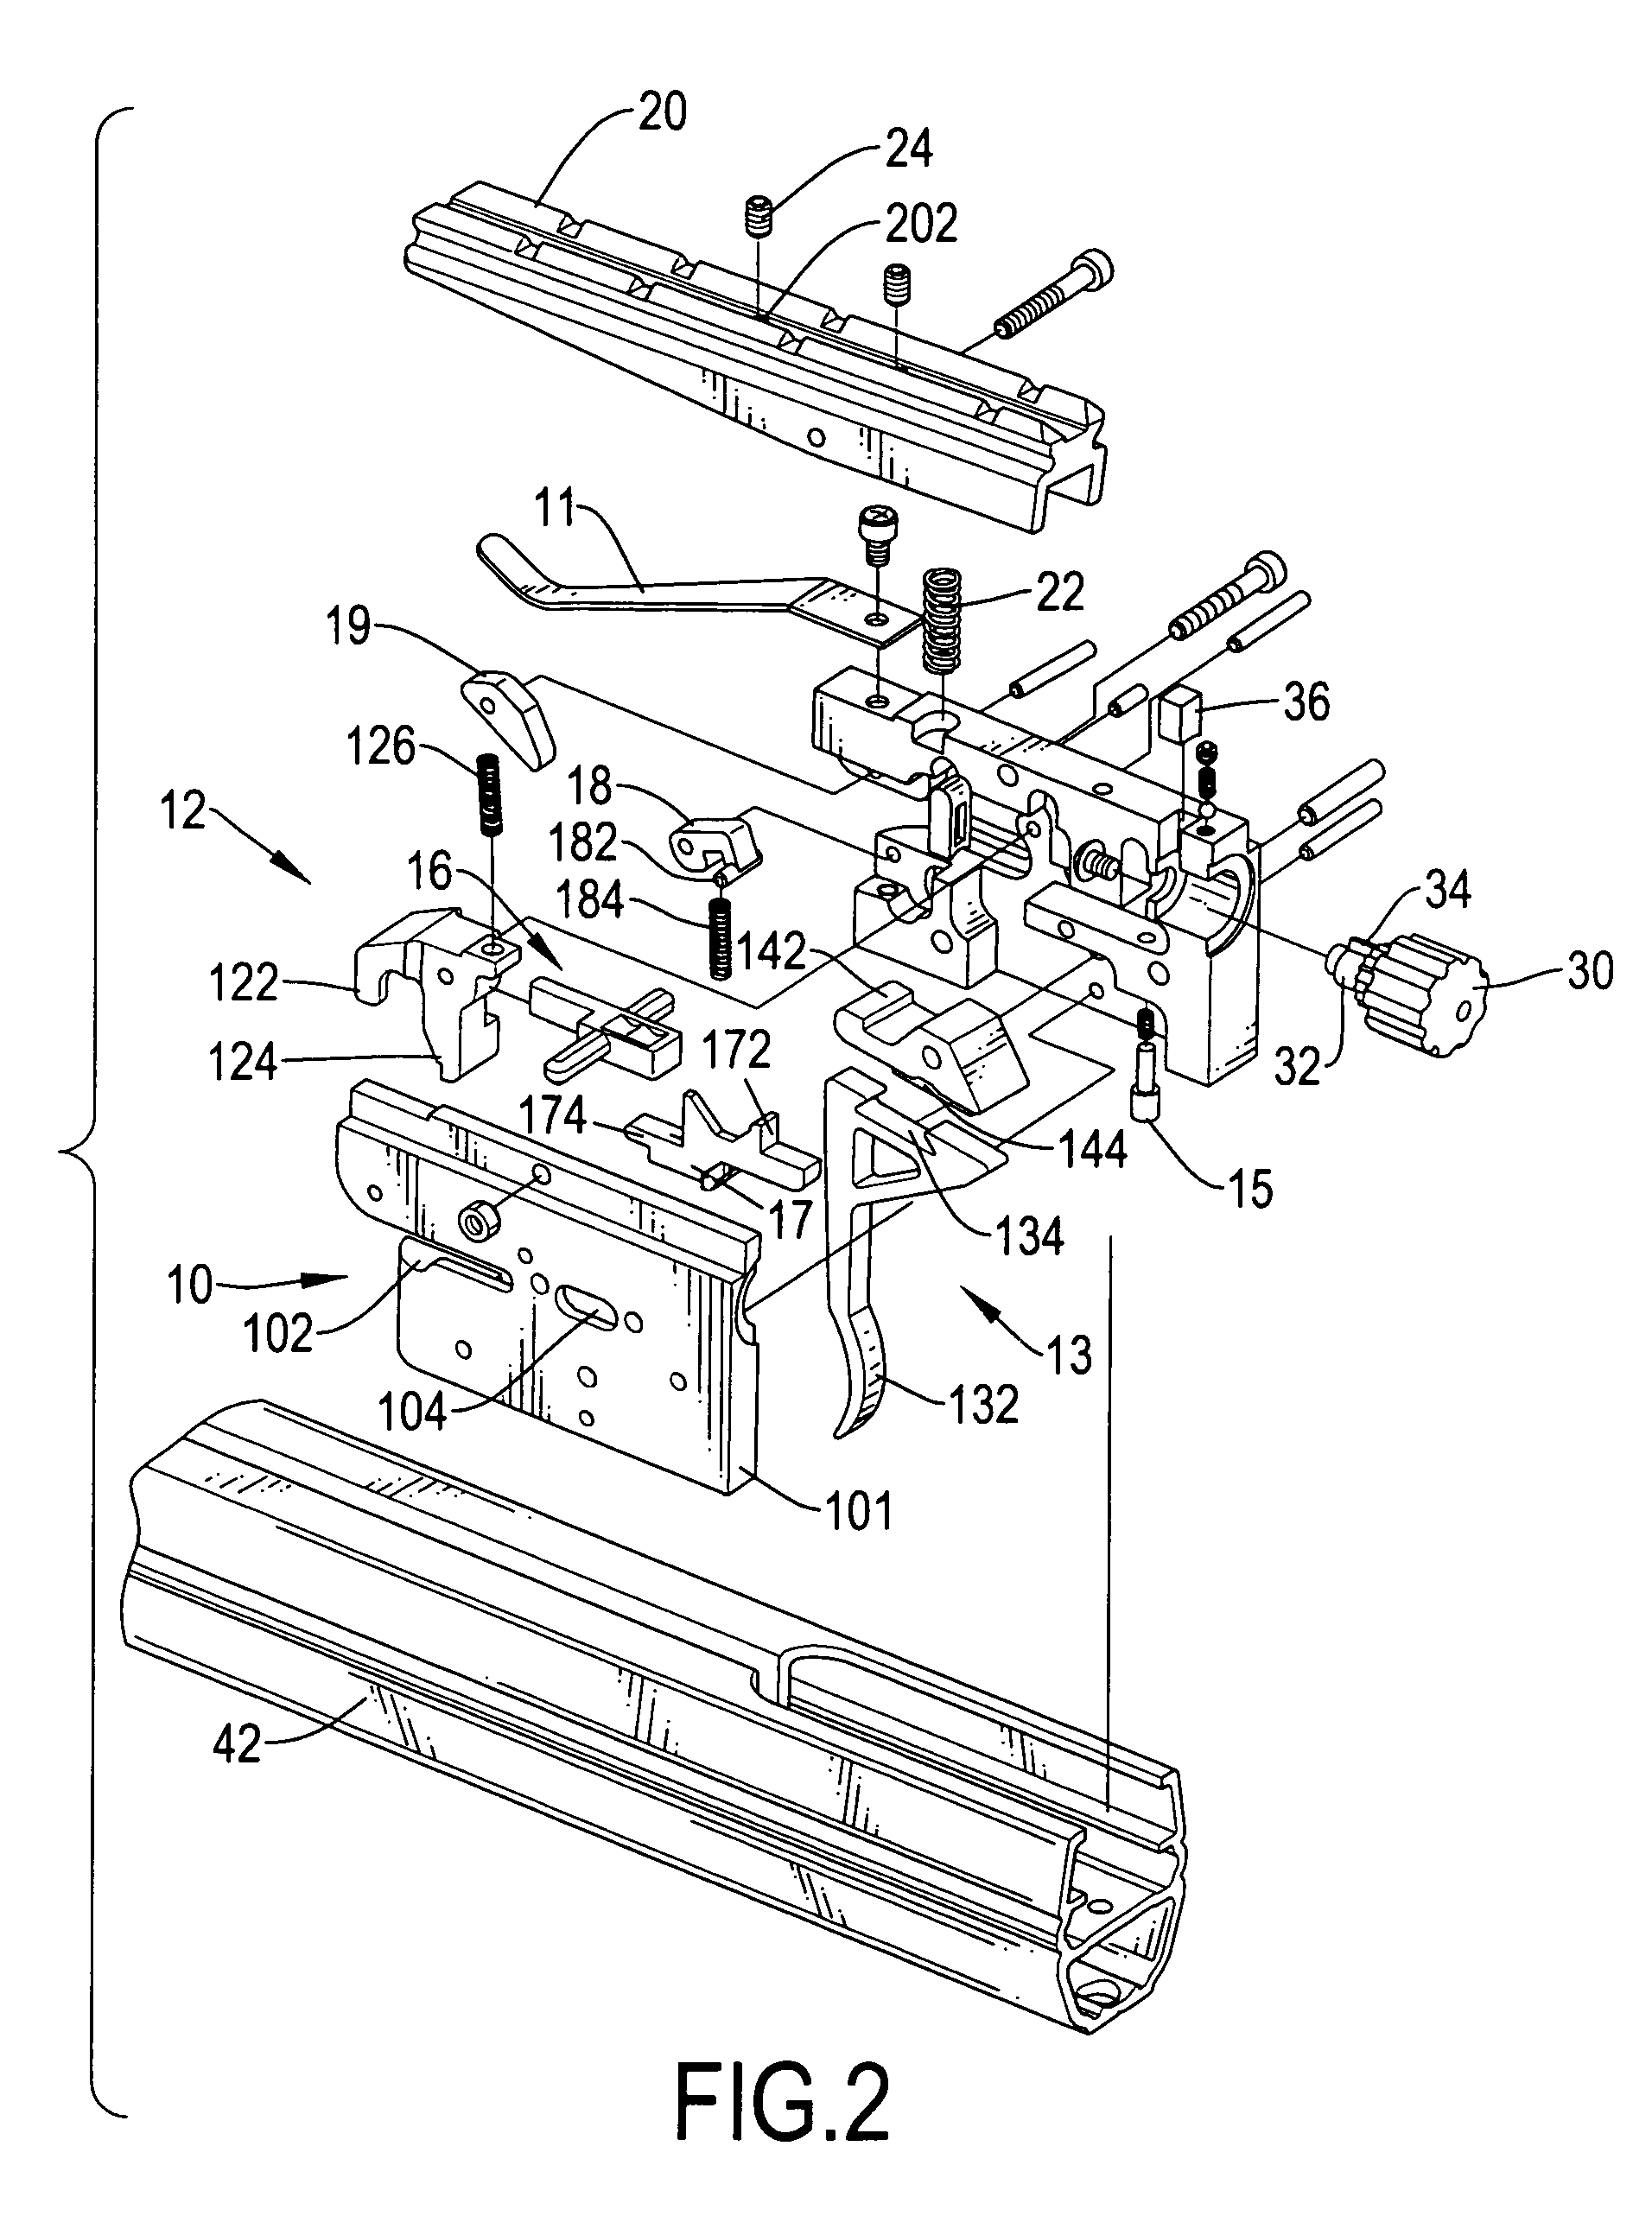 Patent Us7588022 Trigger Assembly With A Safety Device For A